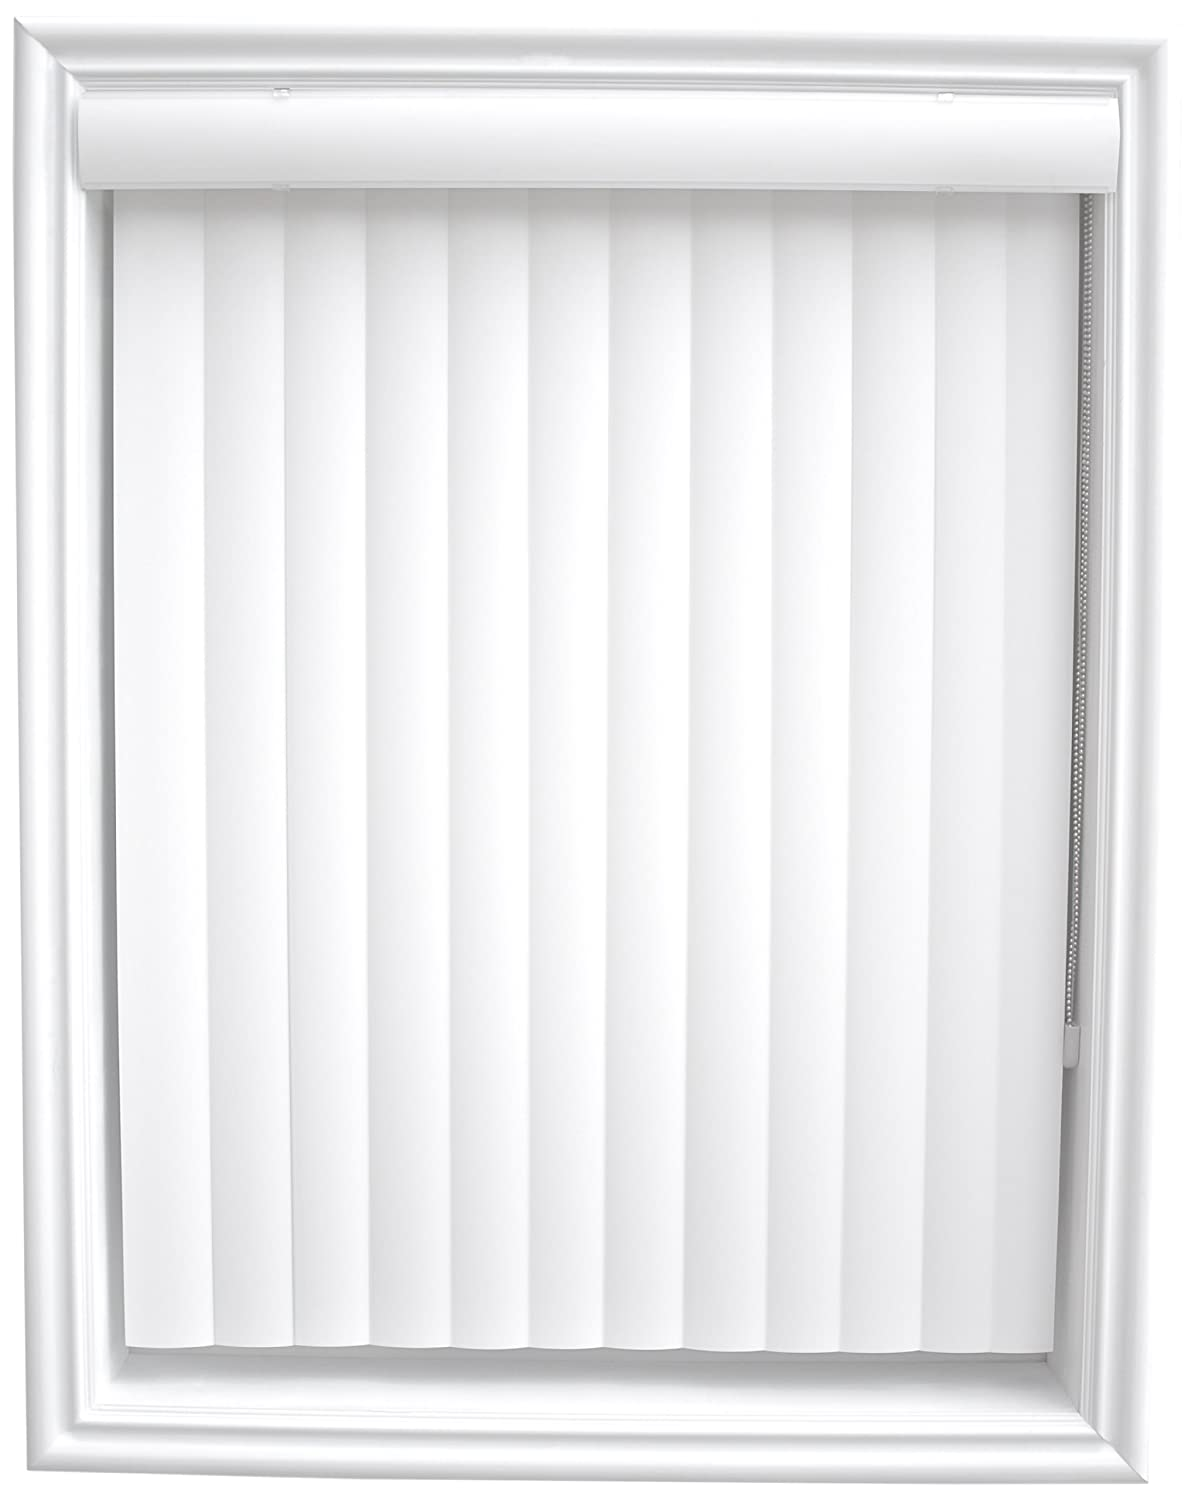 new-age-blinds-simplicity-collection-one-way-opening-curved-vertical-blinds-with-square-corner-valance-inside-mount-50-14-by-24-inch-white